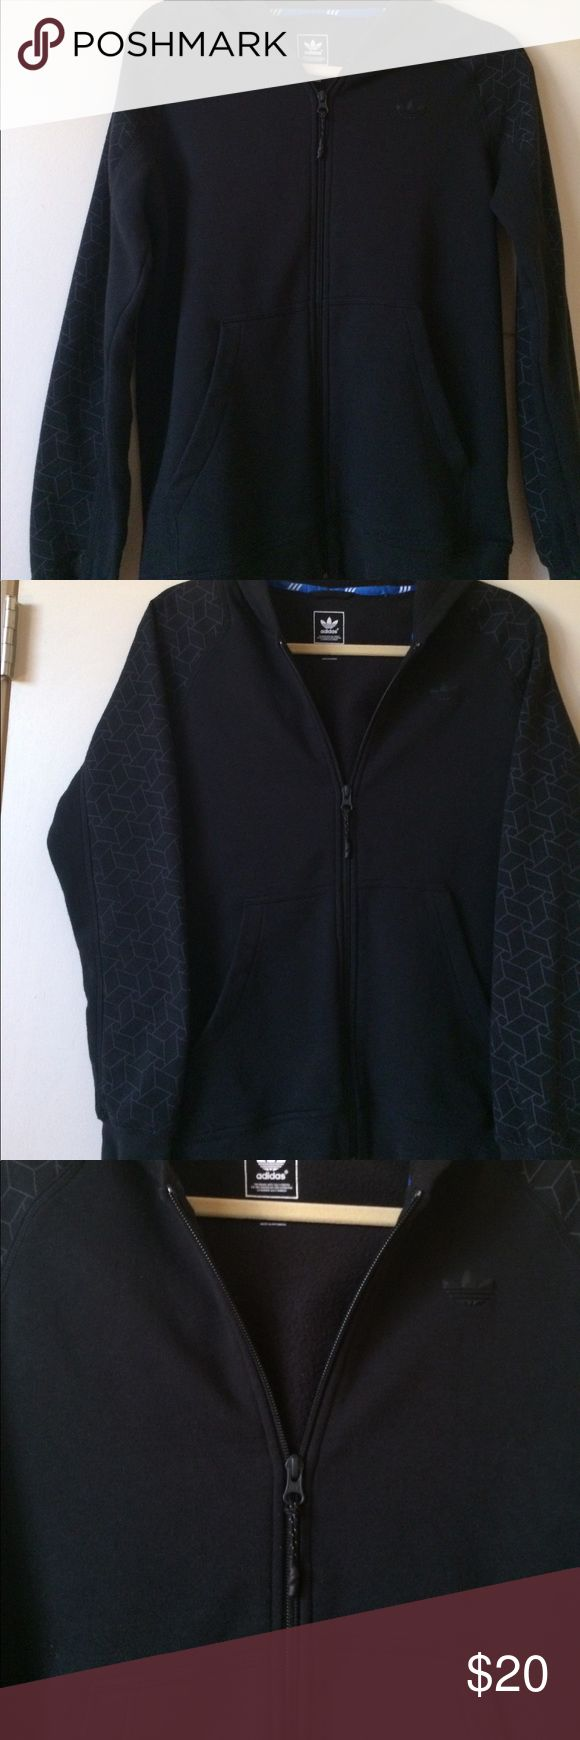 Adidas Black Cotton Hoodie With Front Pockets Adidas Black Cotton Hooded Sweatshirt Zips Up Front Has Geometric Grey Design & Partial Black Duo on Sleeves Adidas Logo Is Black Ribber on Front Left Side Excellent Condition Size Juniors US L Size S & M Unisex Adult Sizes Adidas Jackets & Coats